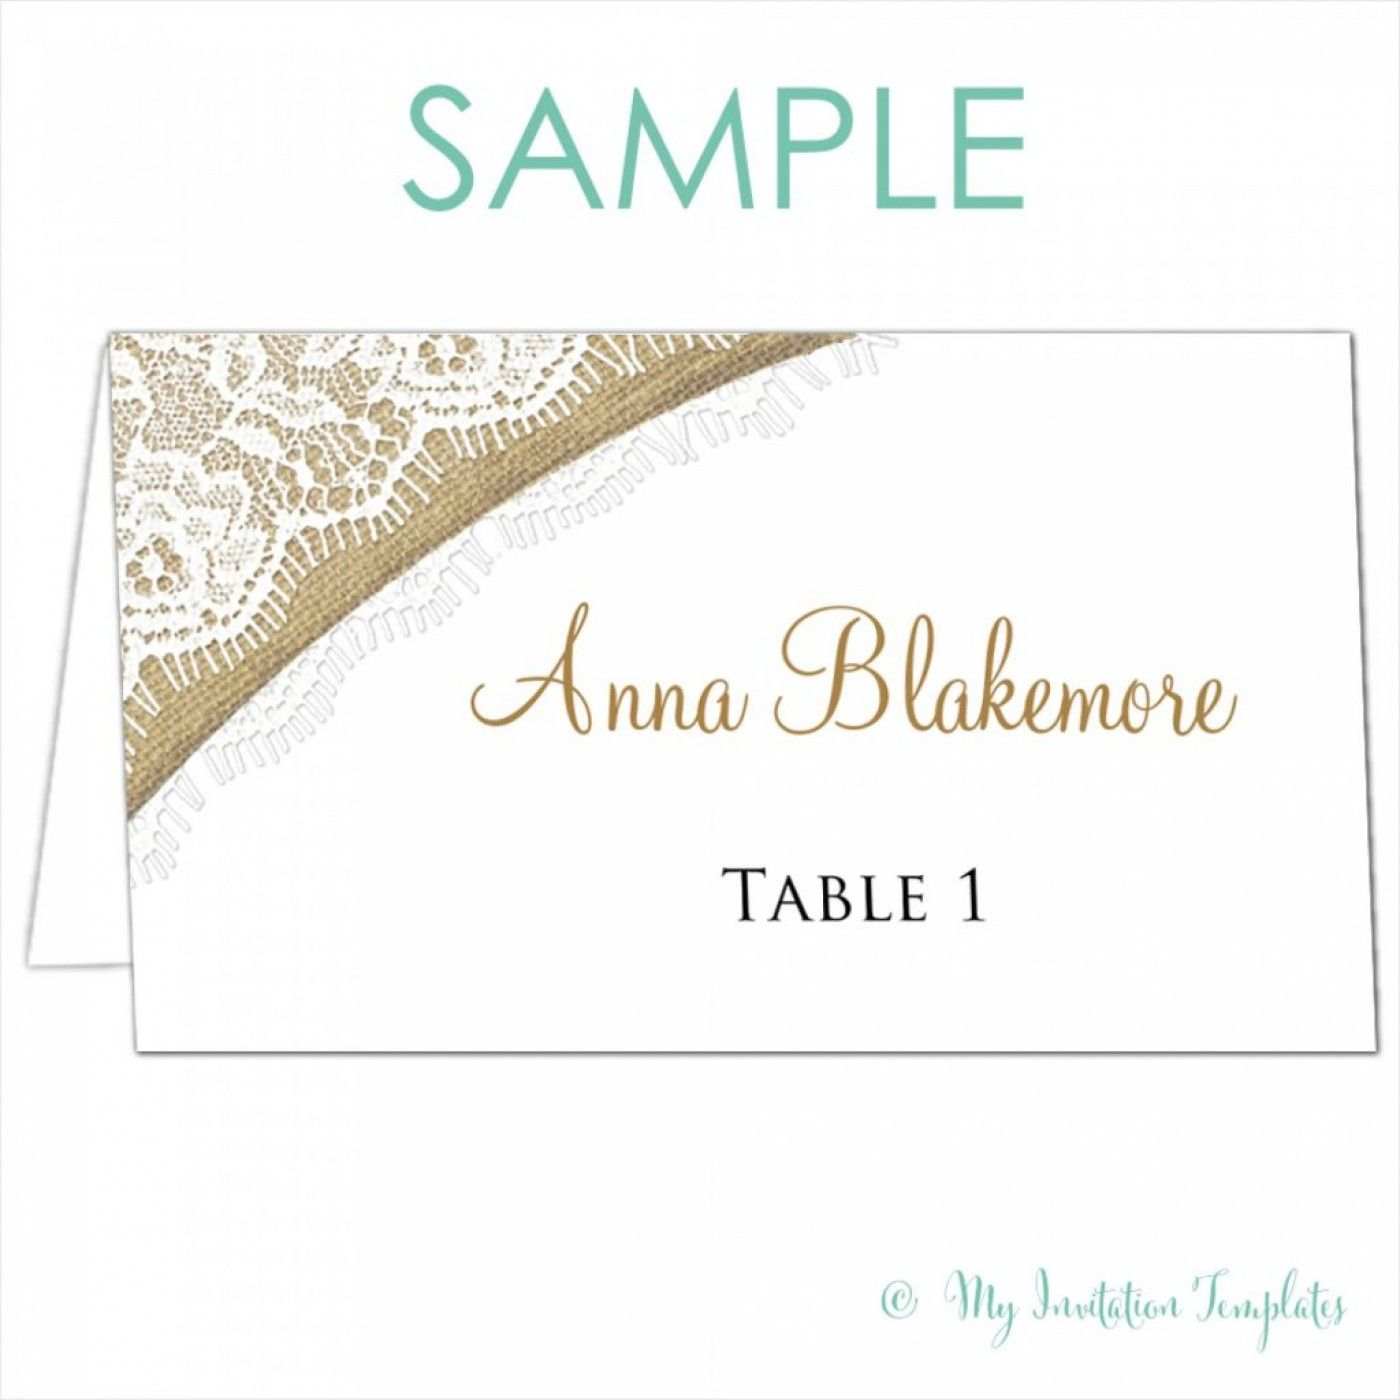 The Marvellous 017 Printable Place Cards Template Breathtaking Ideas Free Inside Paper Source Templ Printable Place Cards Templates Printable Place Cards Cards